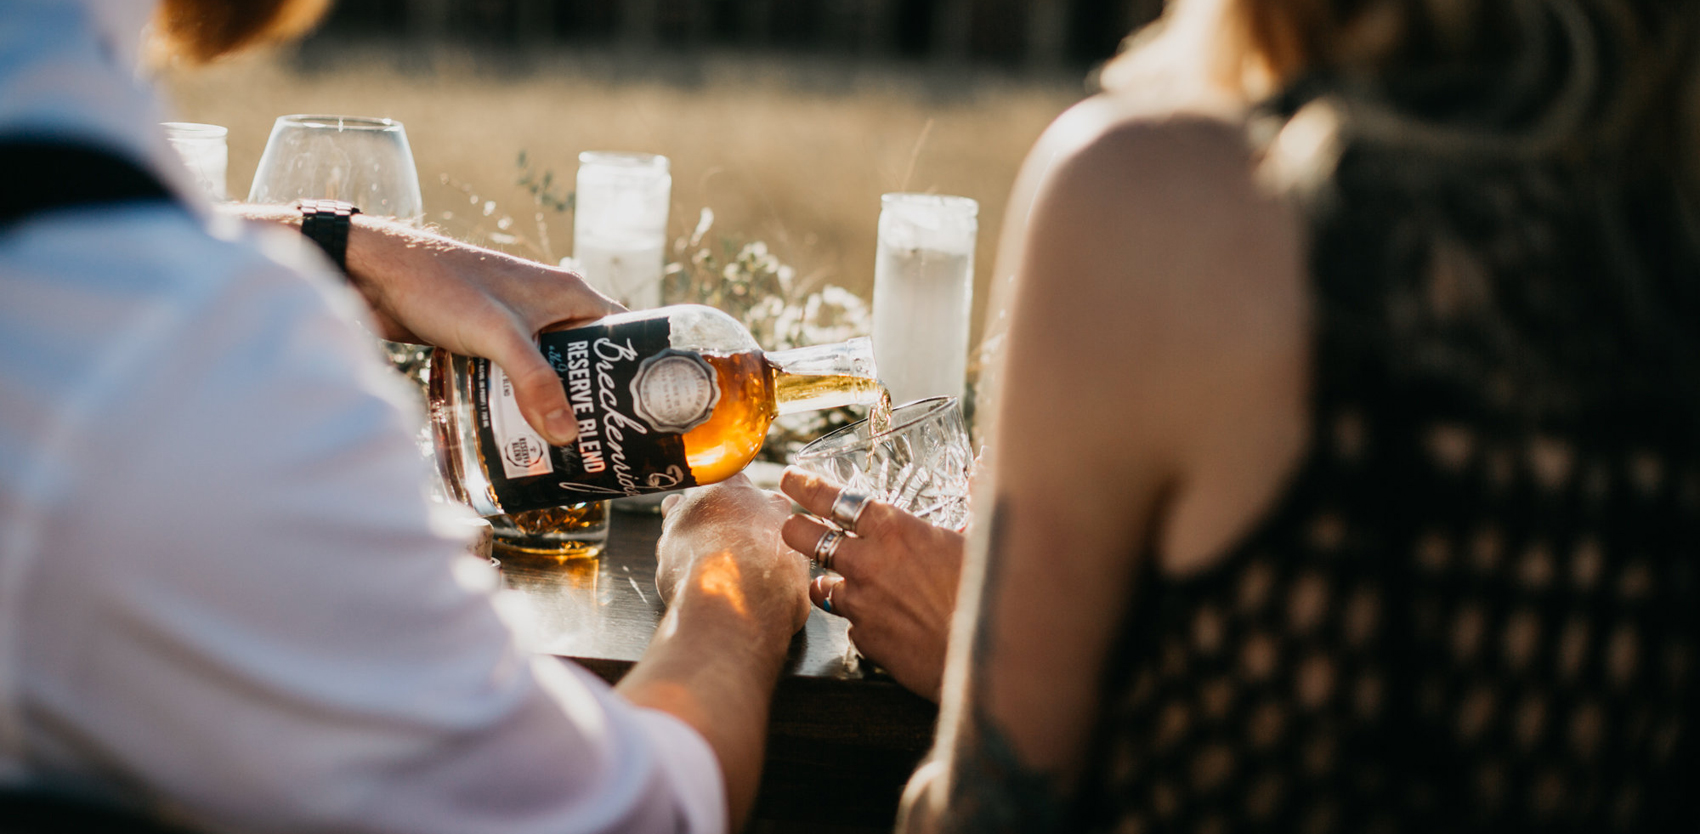 Photos: Breckenridge Whiskey Inspired Engagement